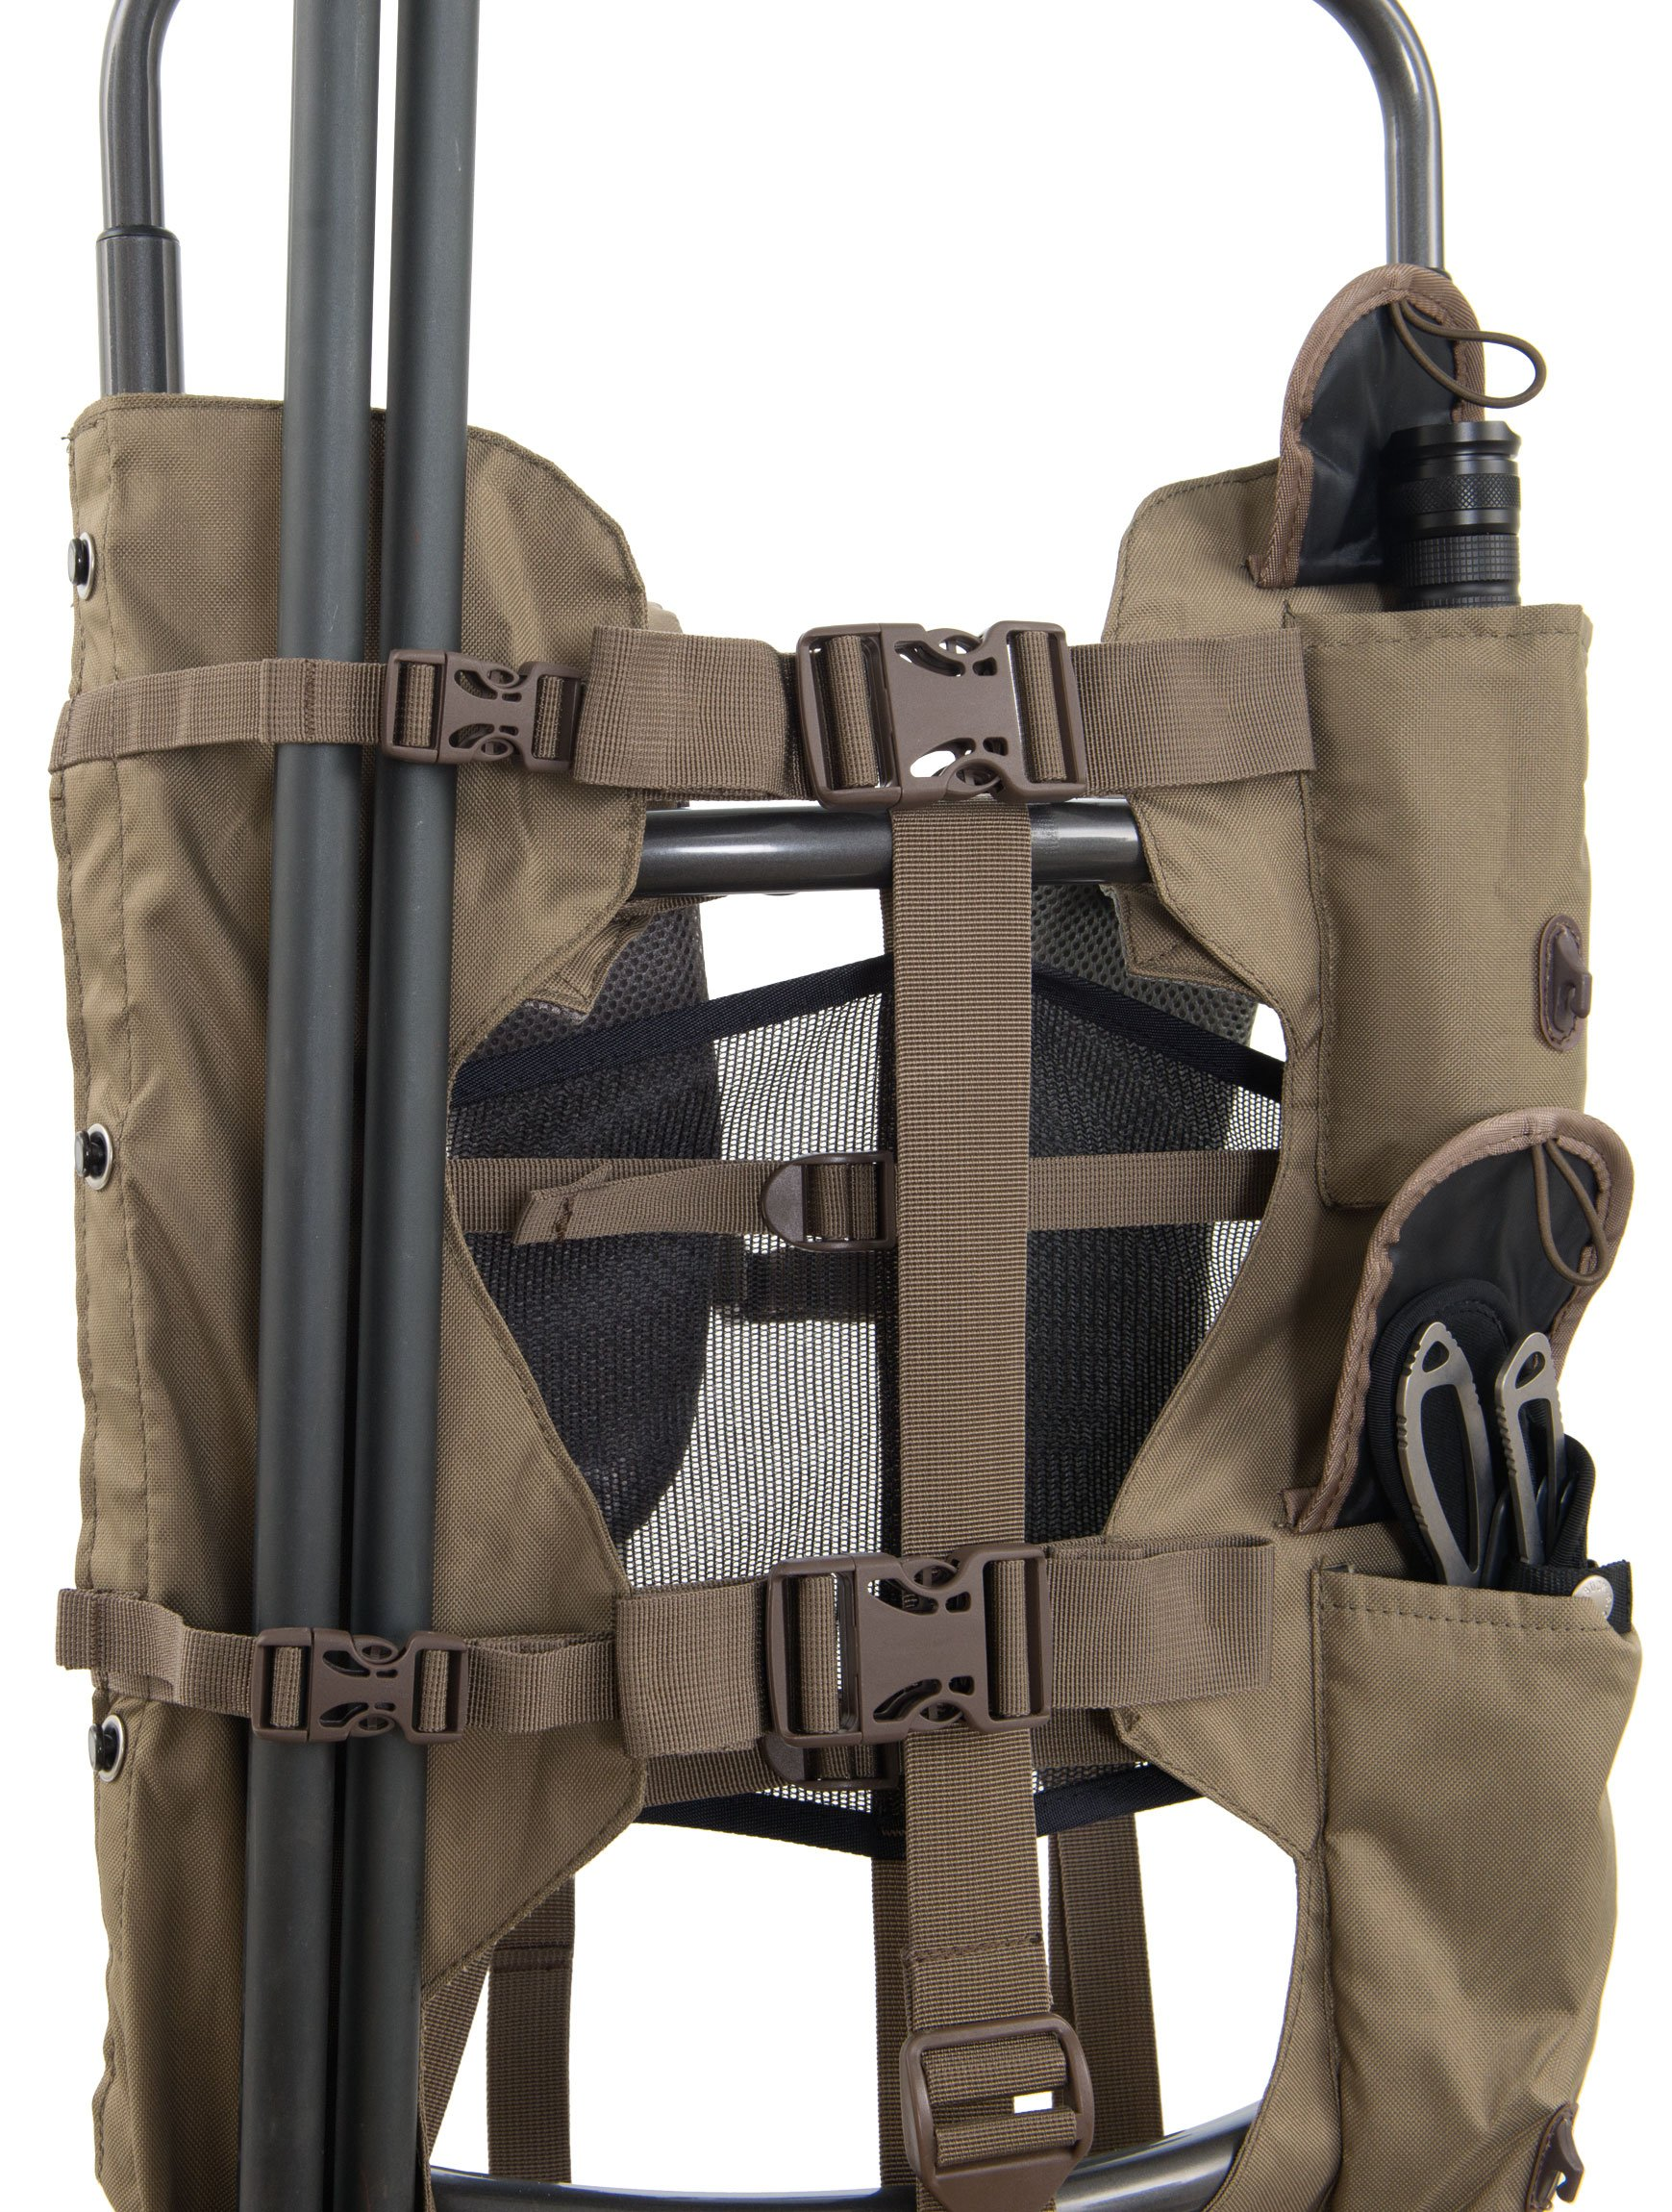 ALPS OutdoorZ Commander Frame Only by ALPS OutdoorZ (Image #6)